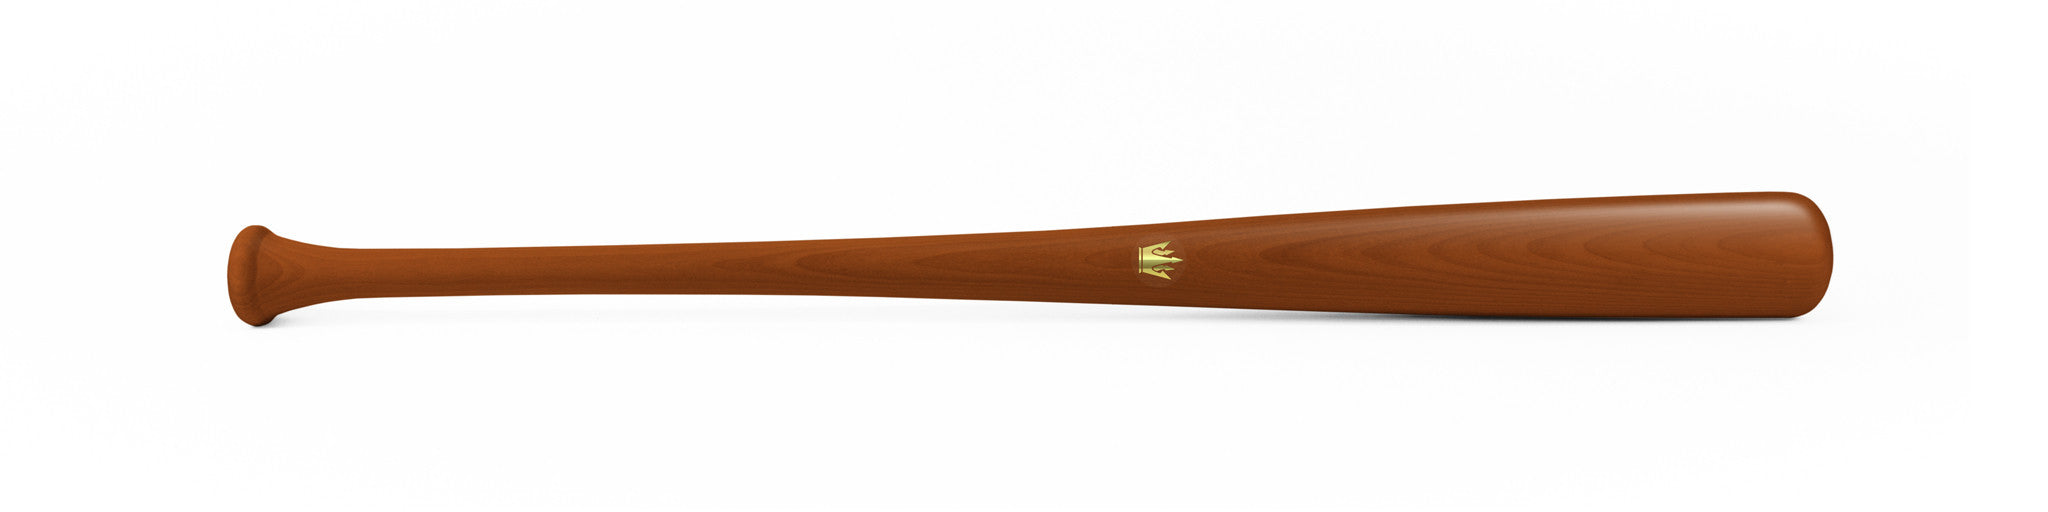 Wood bat - Birch model Y271 Honey - 20